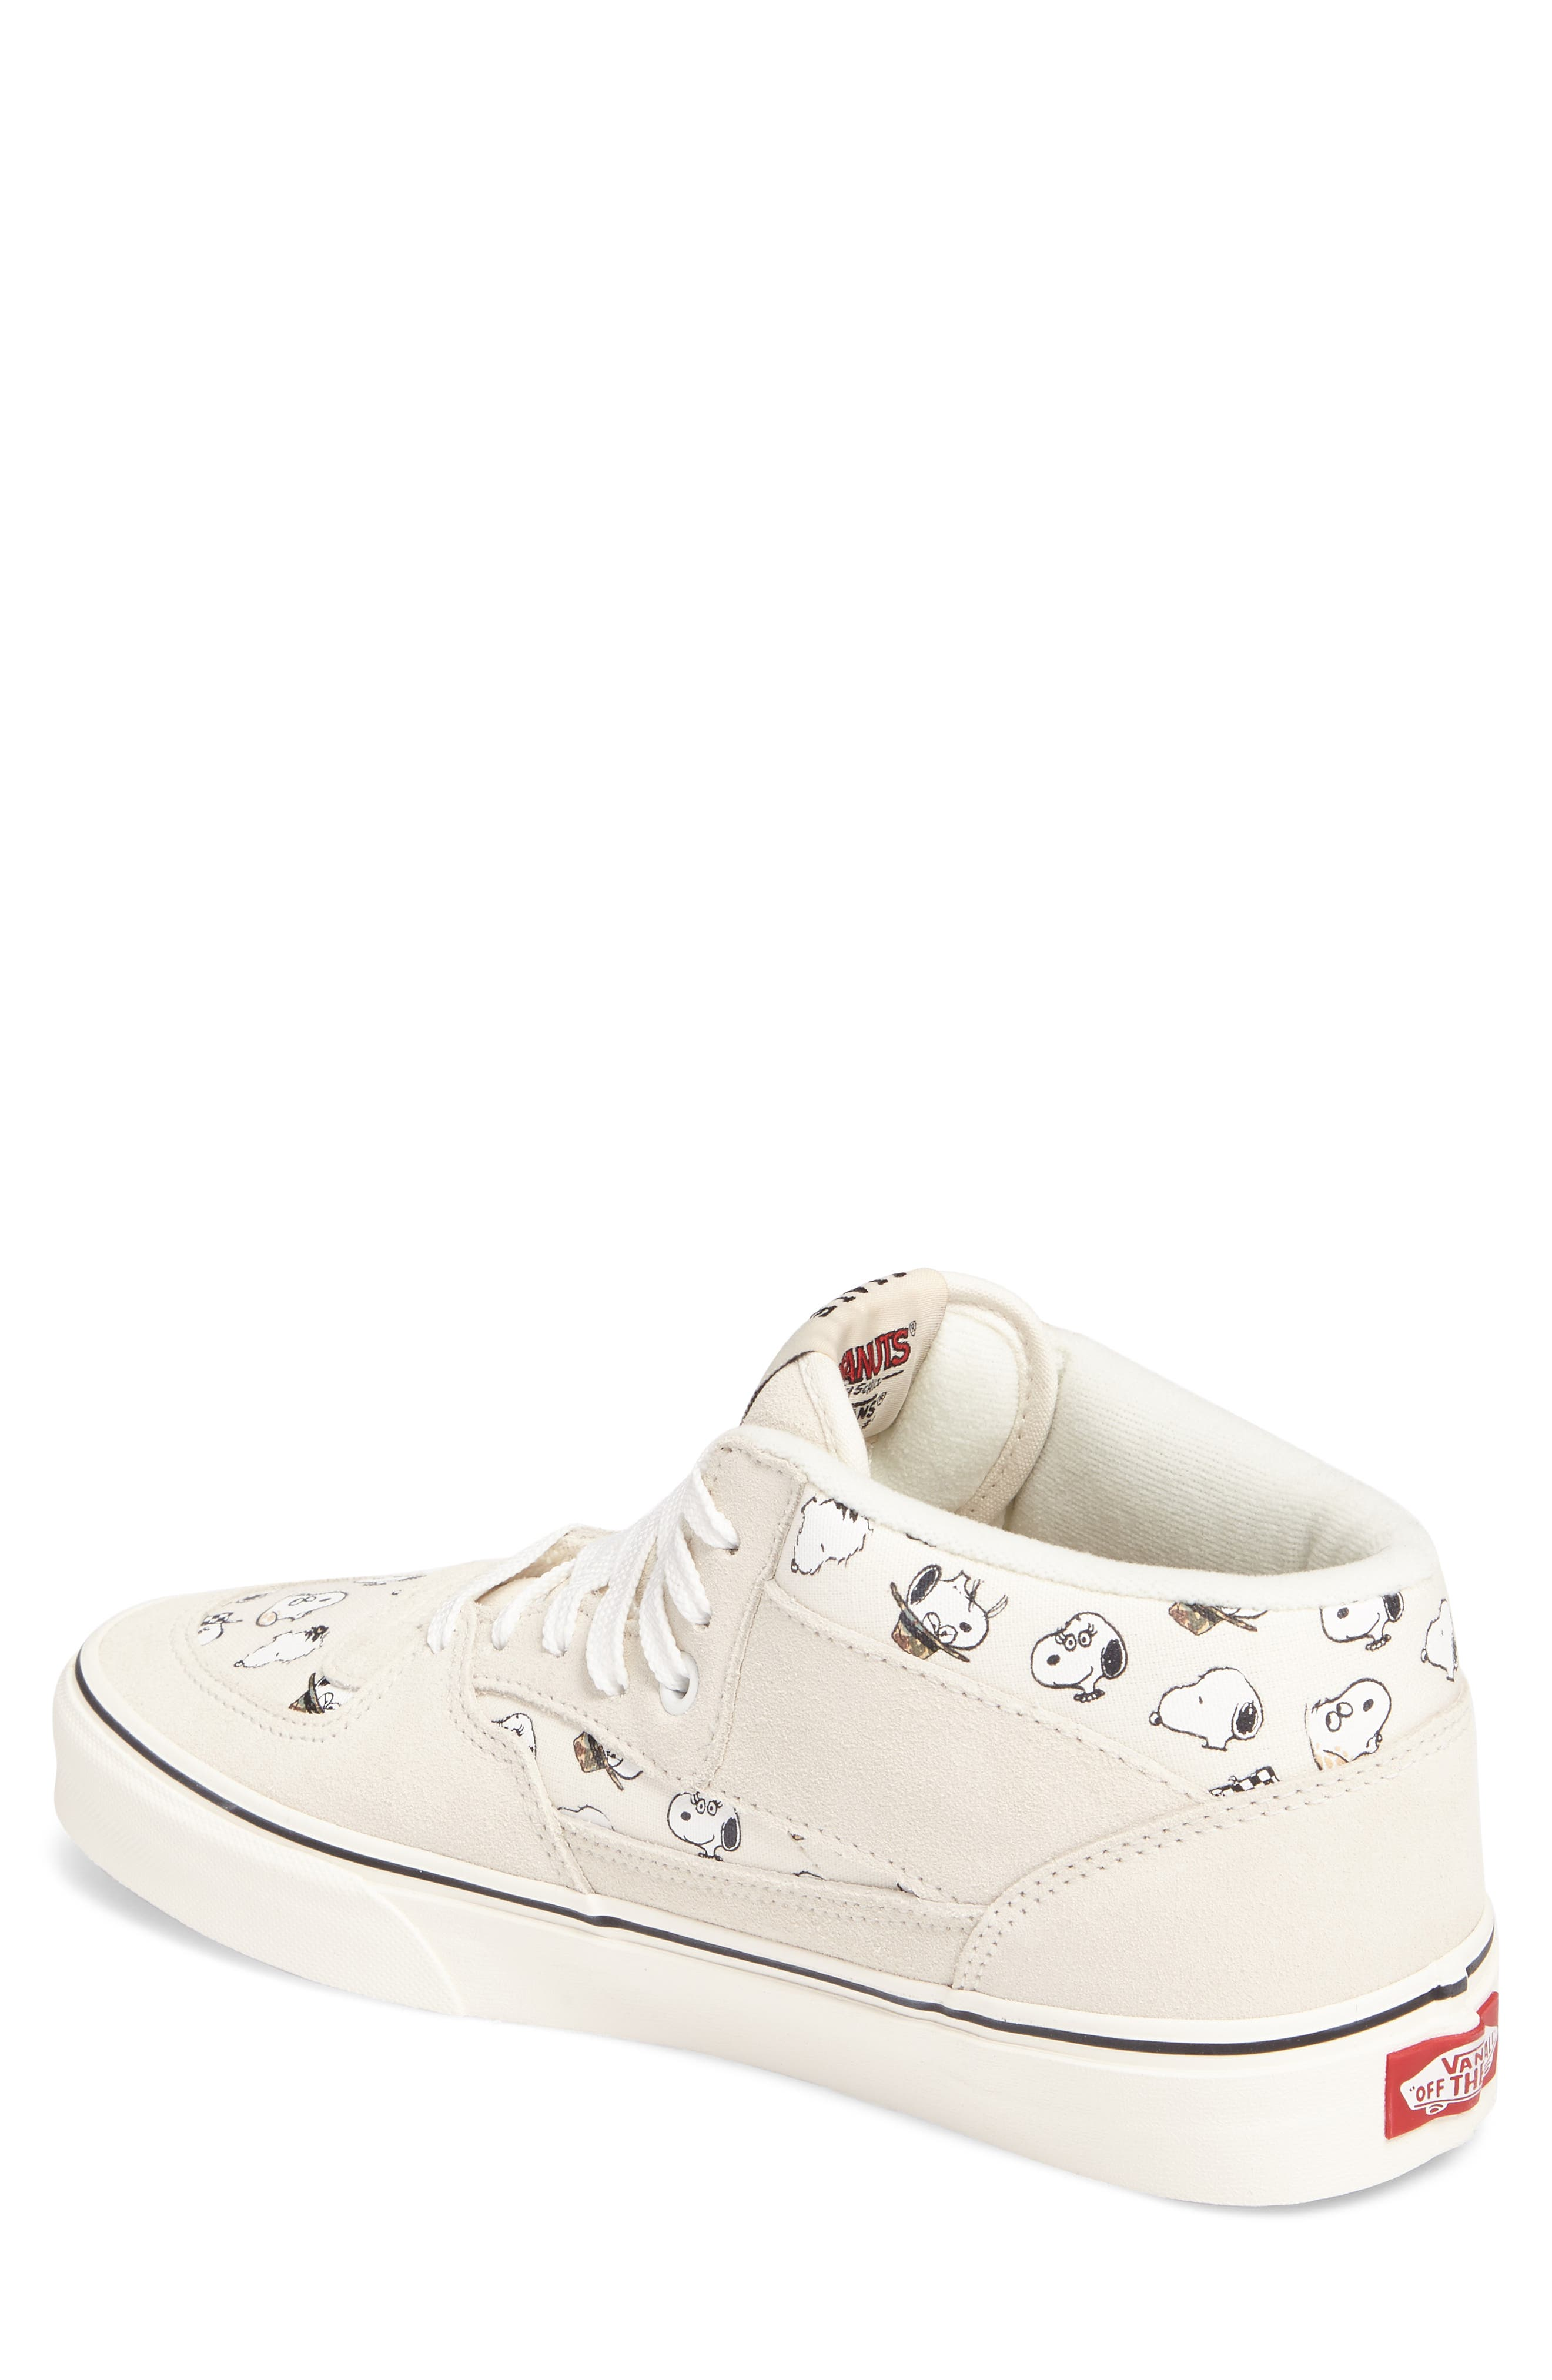 x Peanuts<sup>®</sup> Half Cab Sneaker,                             Alternate thumbnail 2, color,                             Marshmallow Canvas/Suede